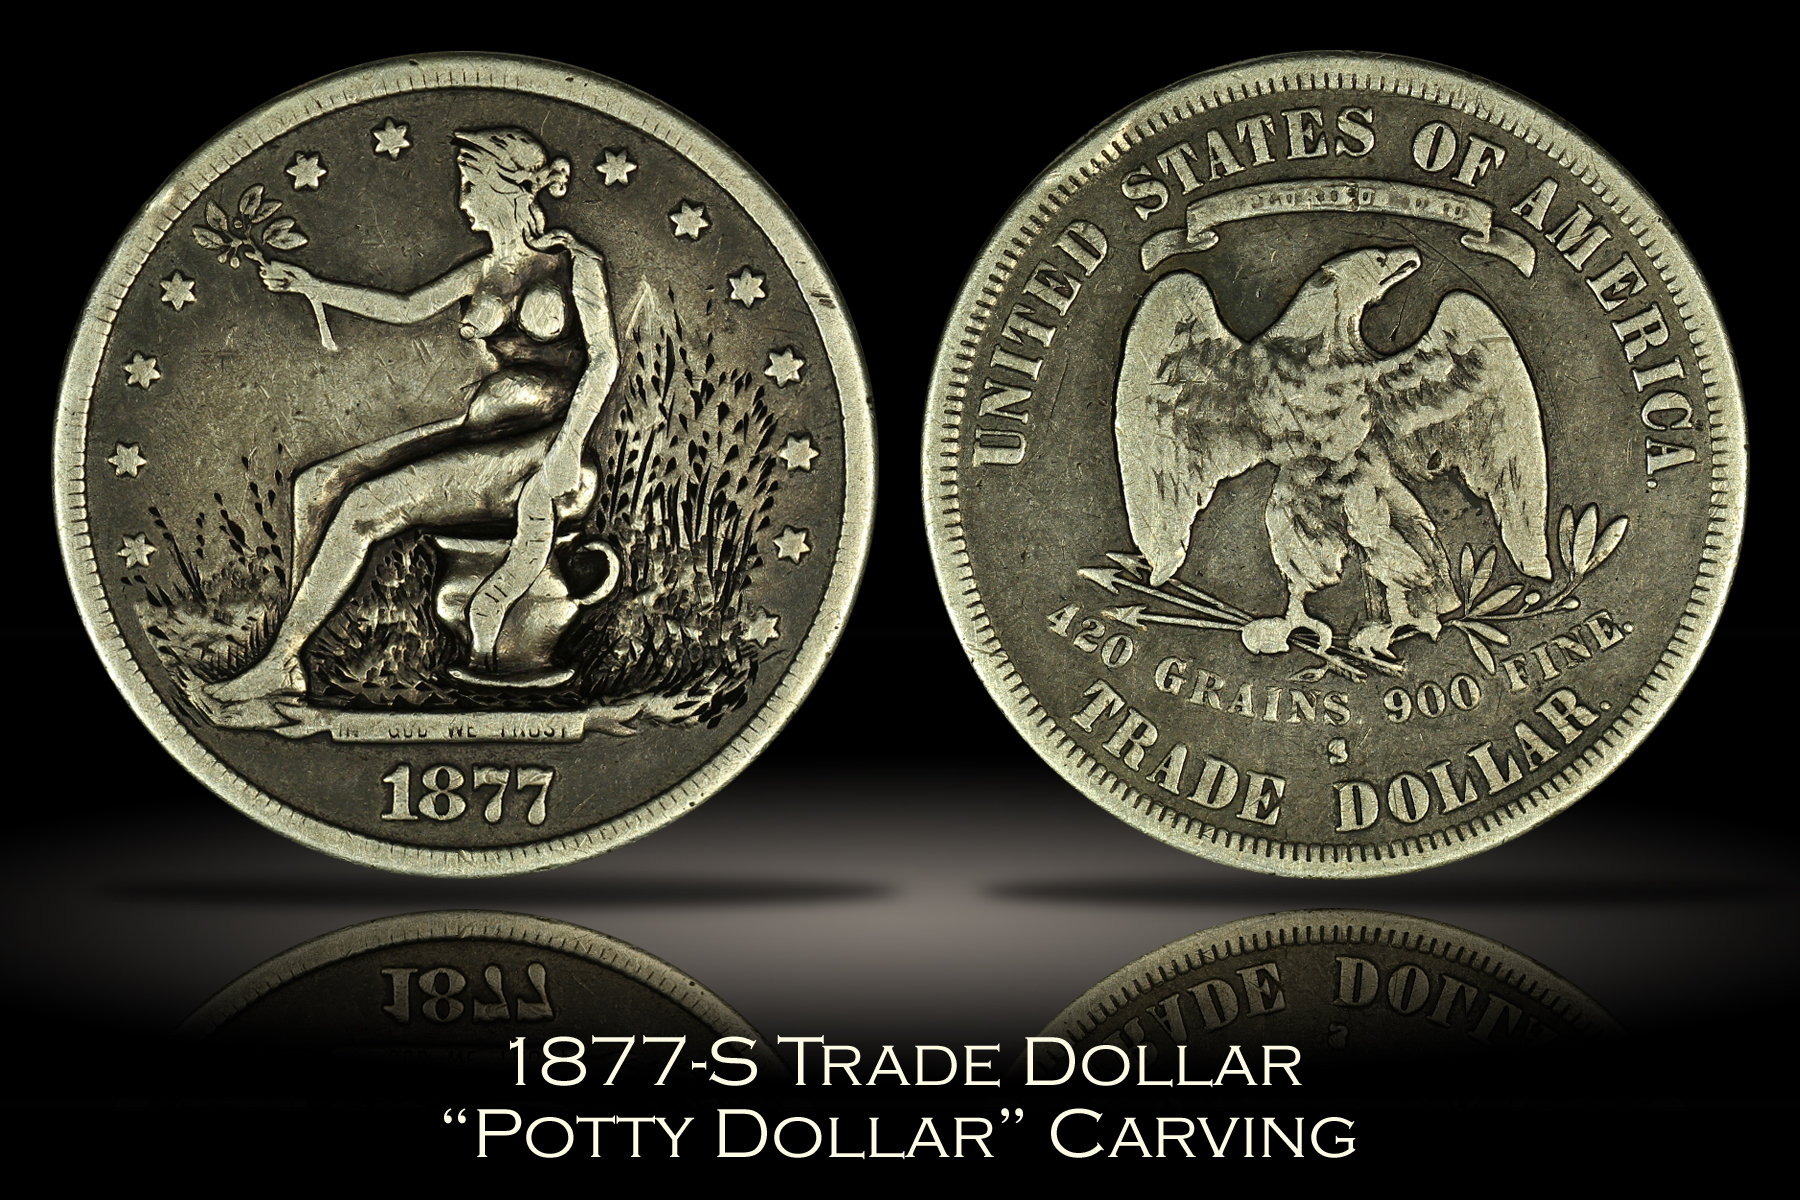 1877-S Trade Dollar Potty Dollar Carving